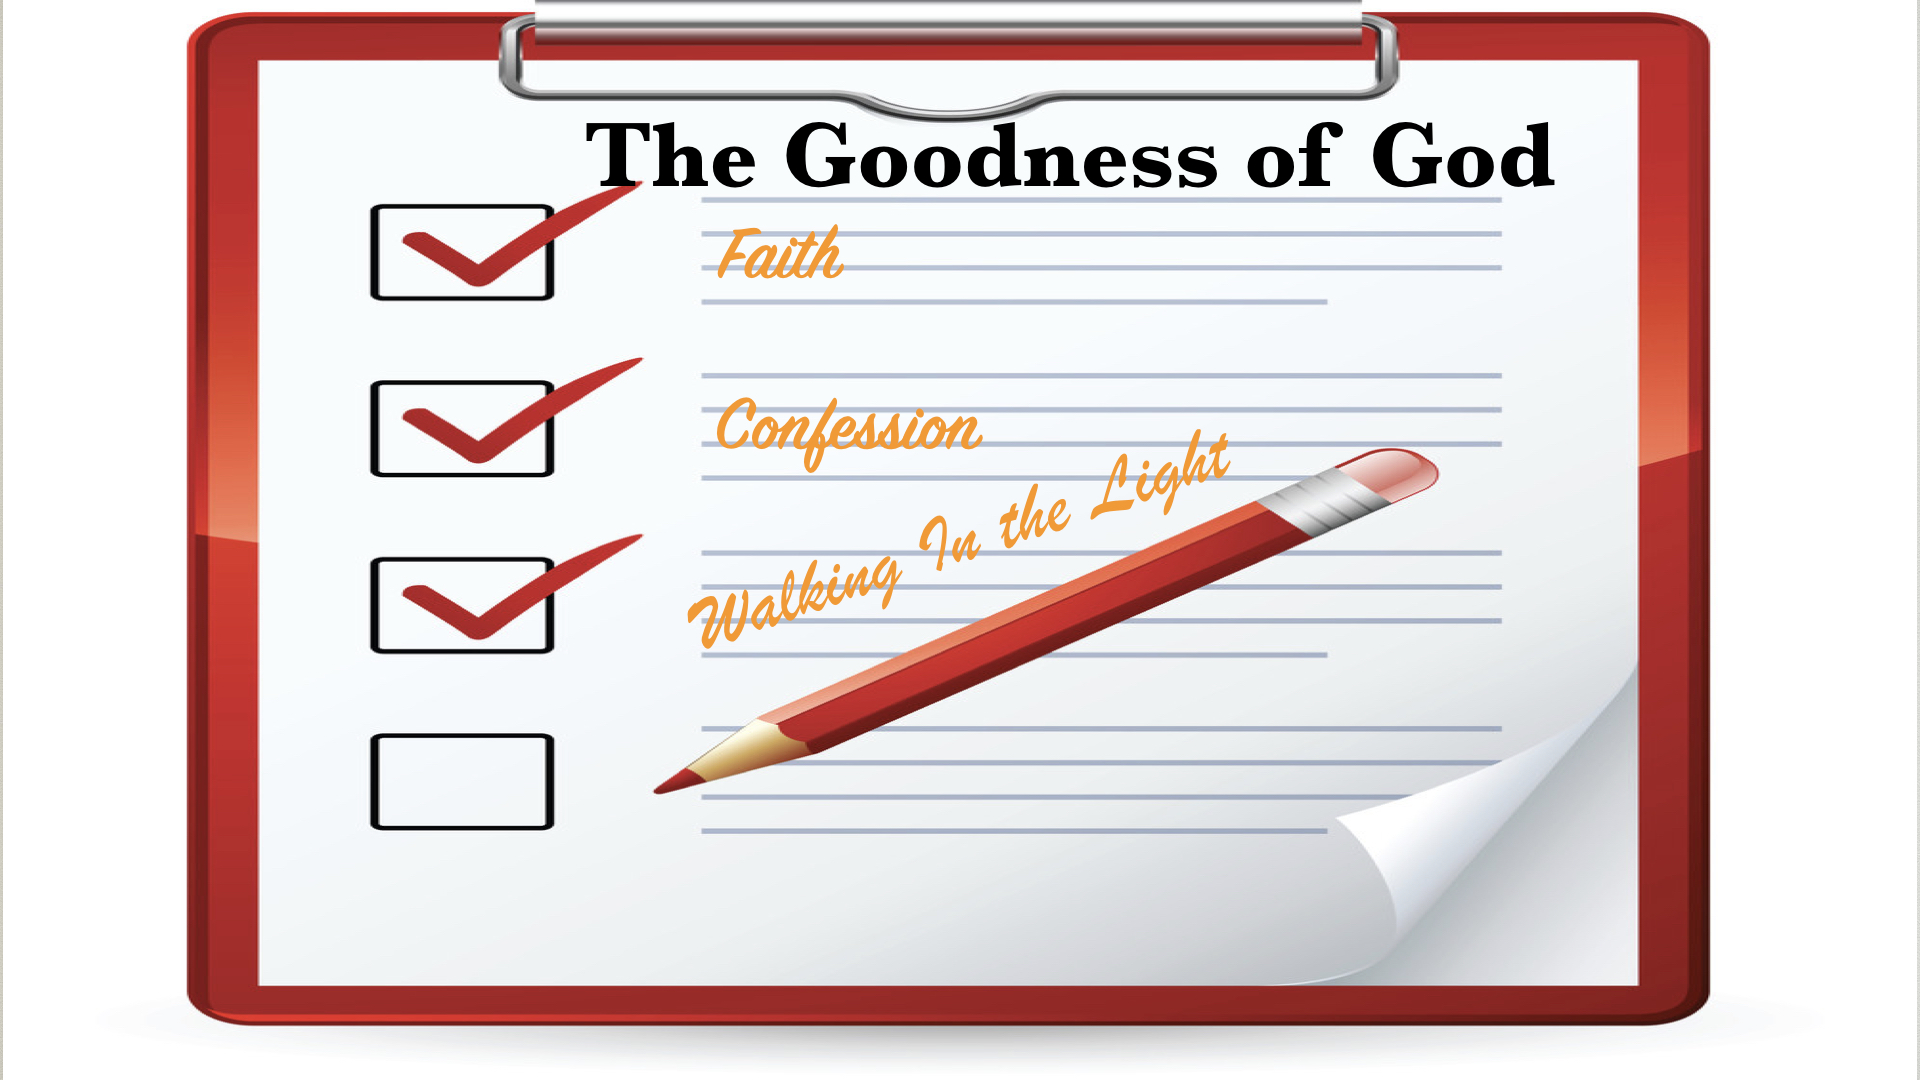 Goodness Checklist 1/28/2018 8:10:09 AM